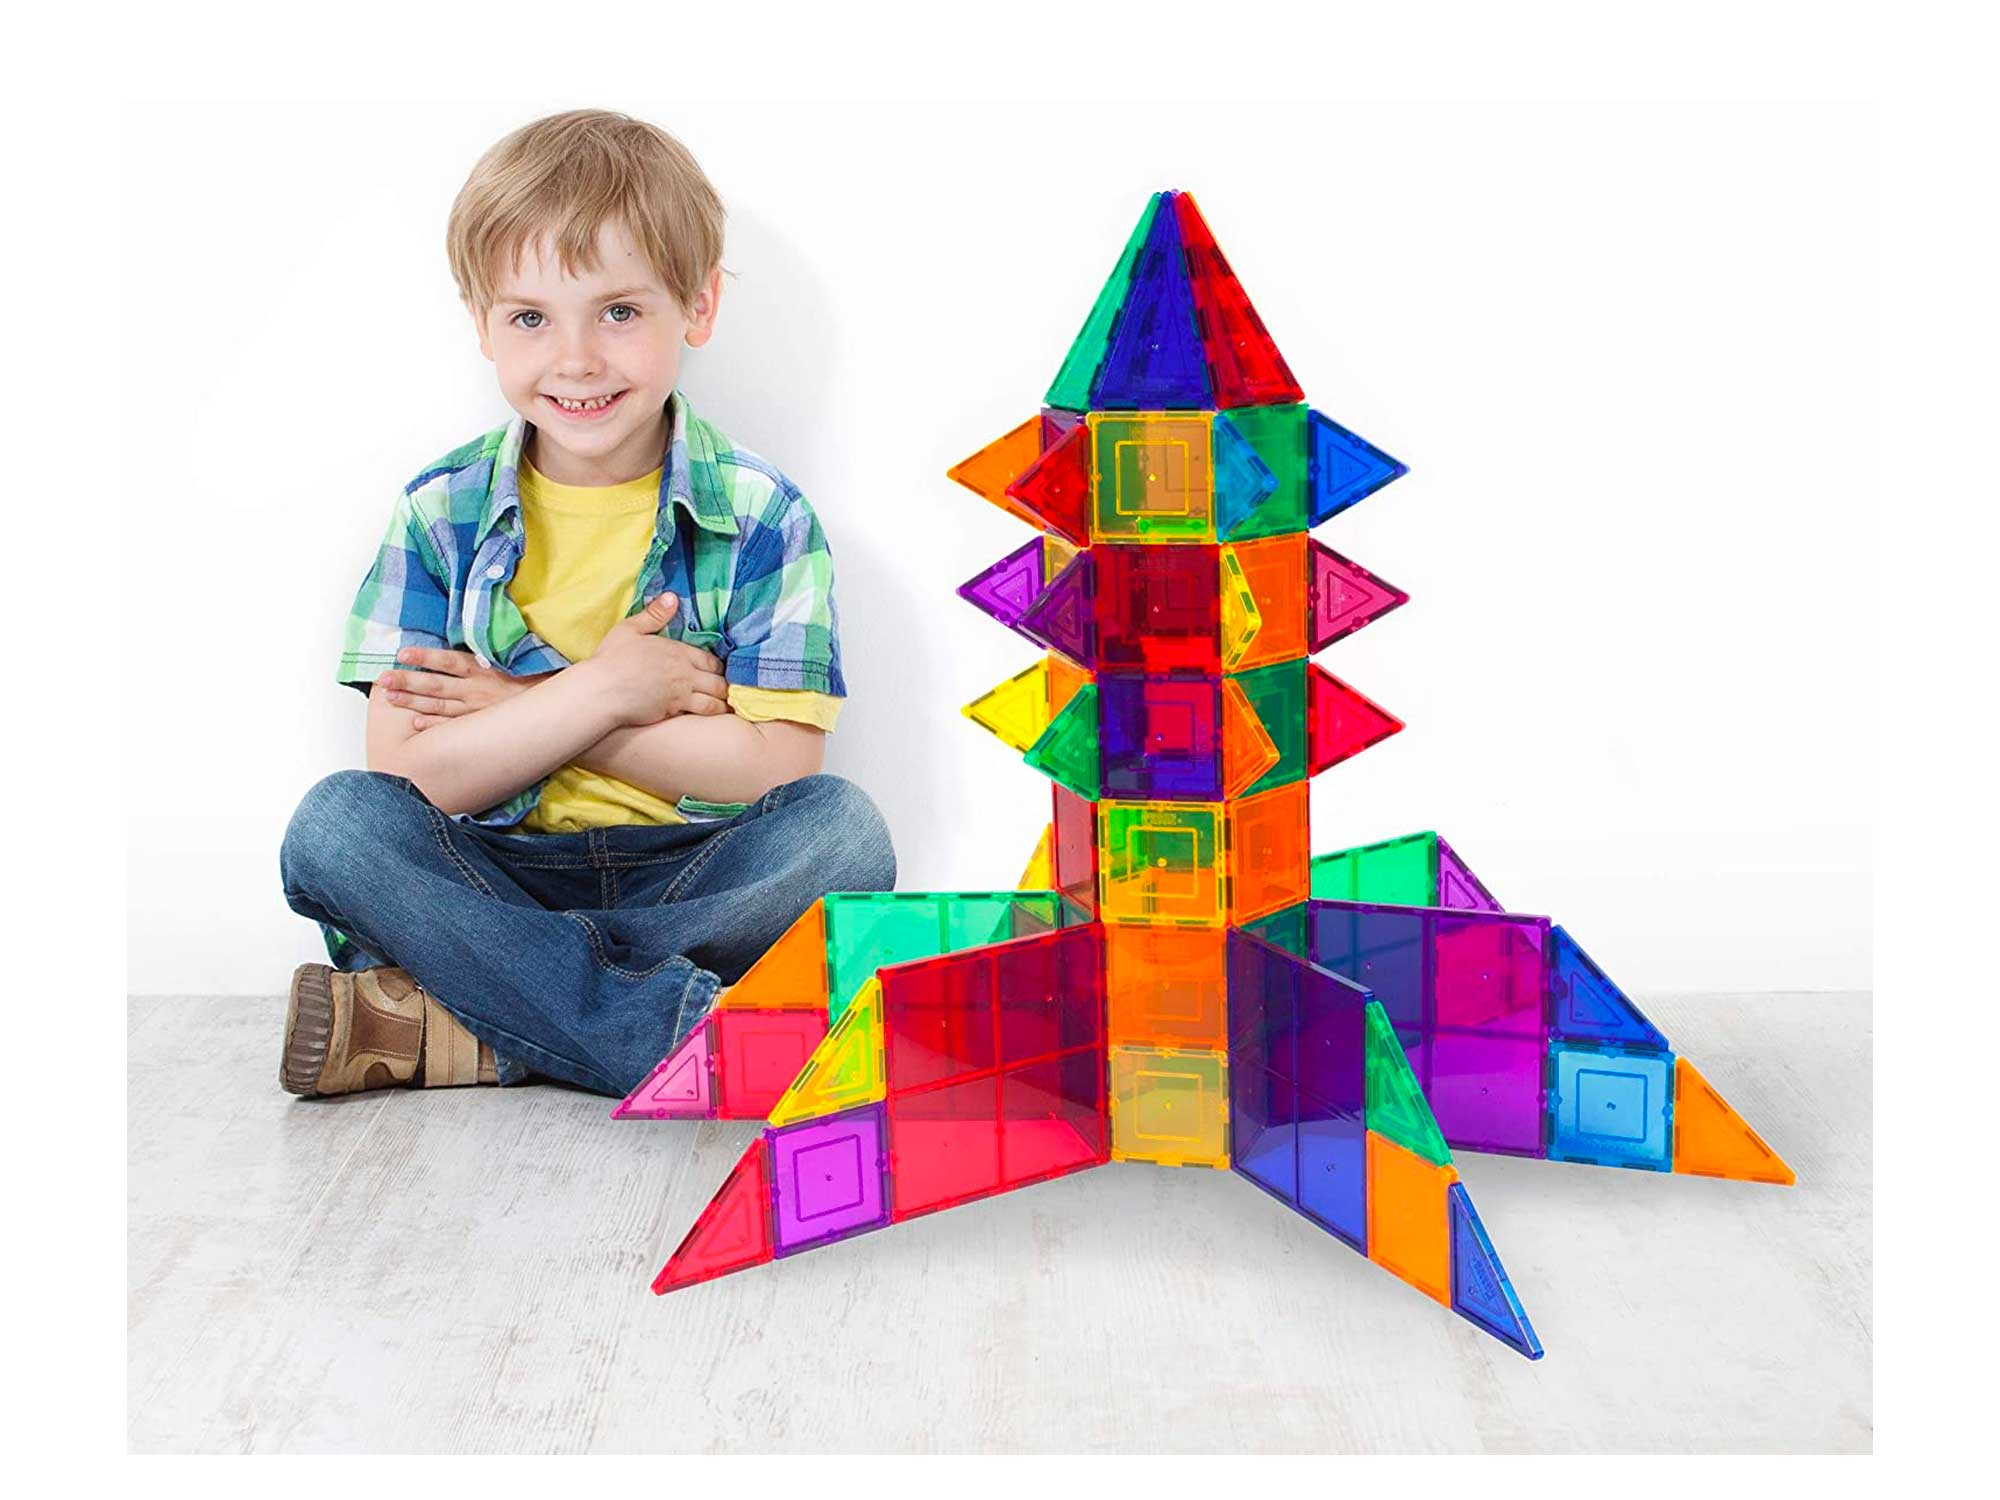 Little boy with a building toy